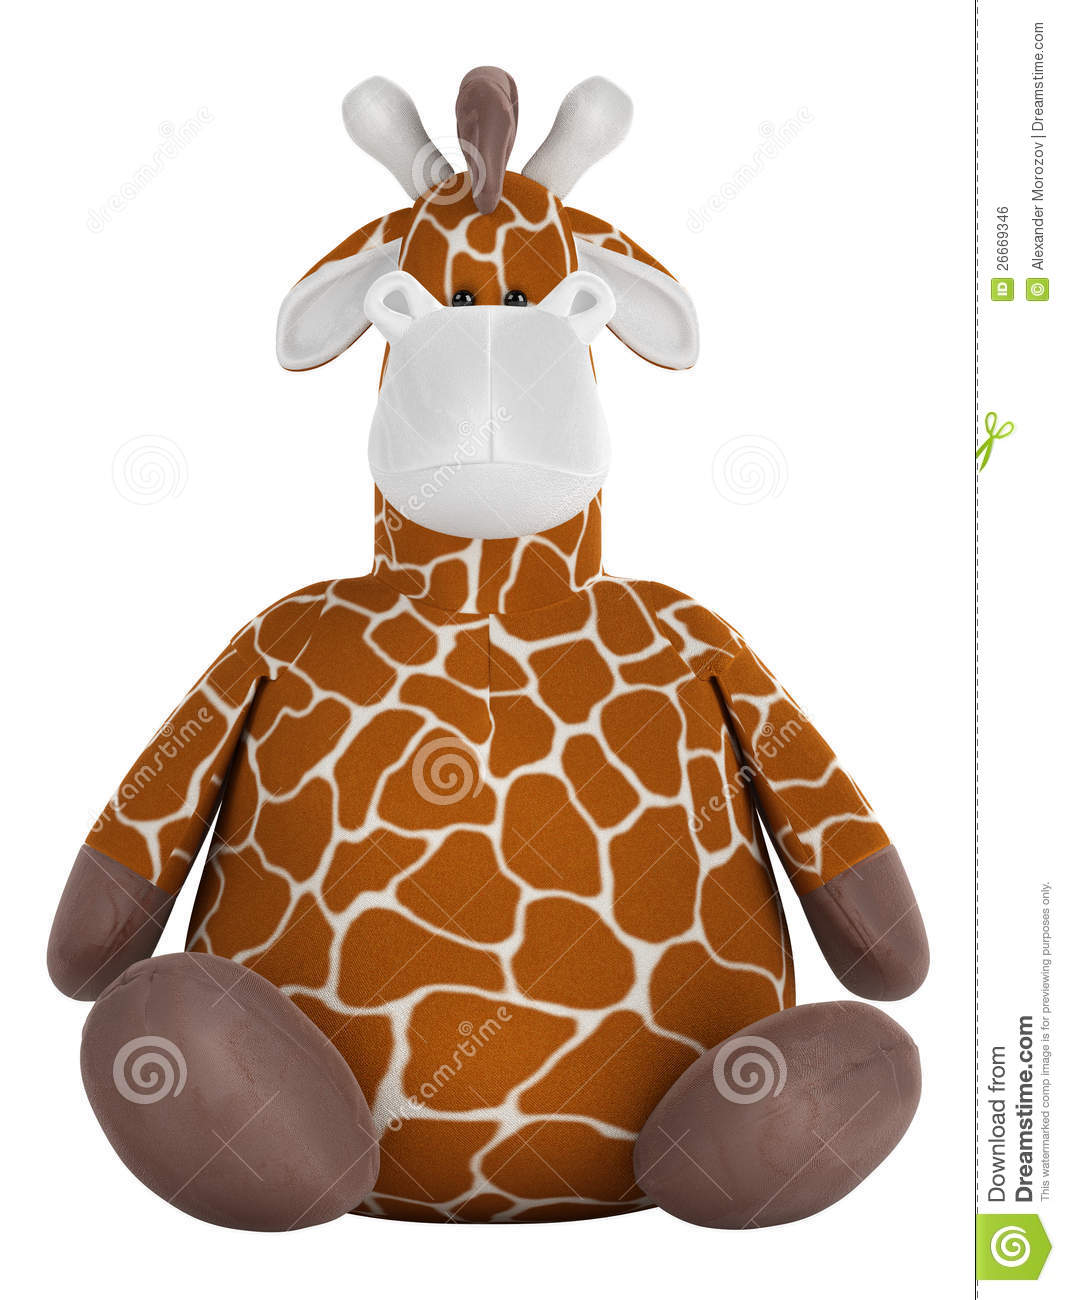 Adorable Fat Stuffed Giraffe Stock Illustration Image